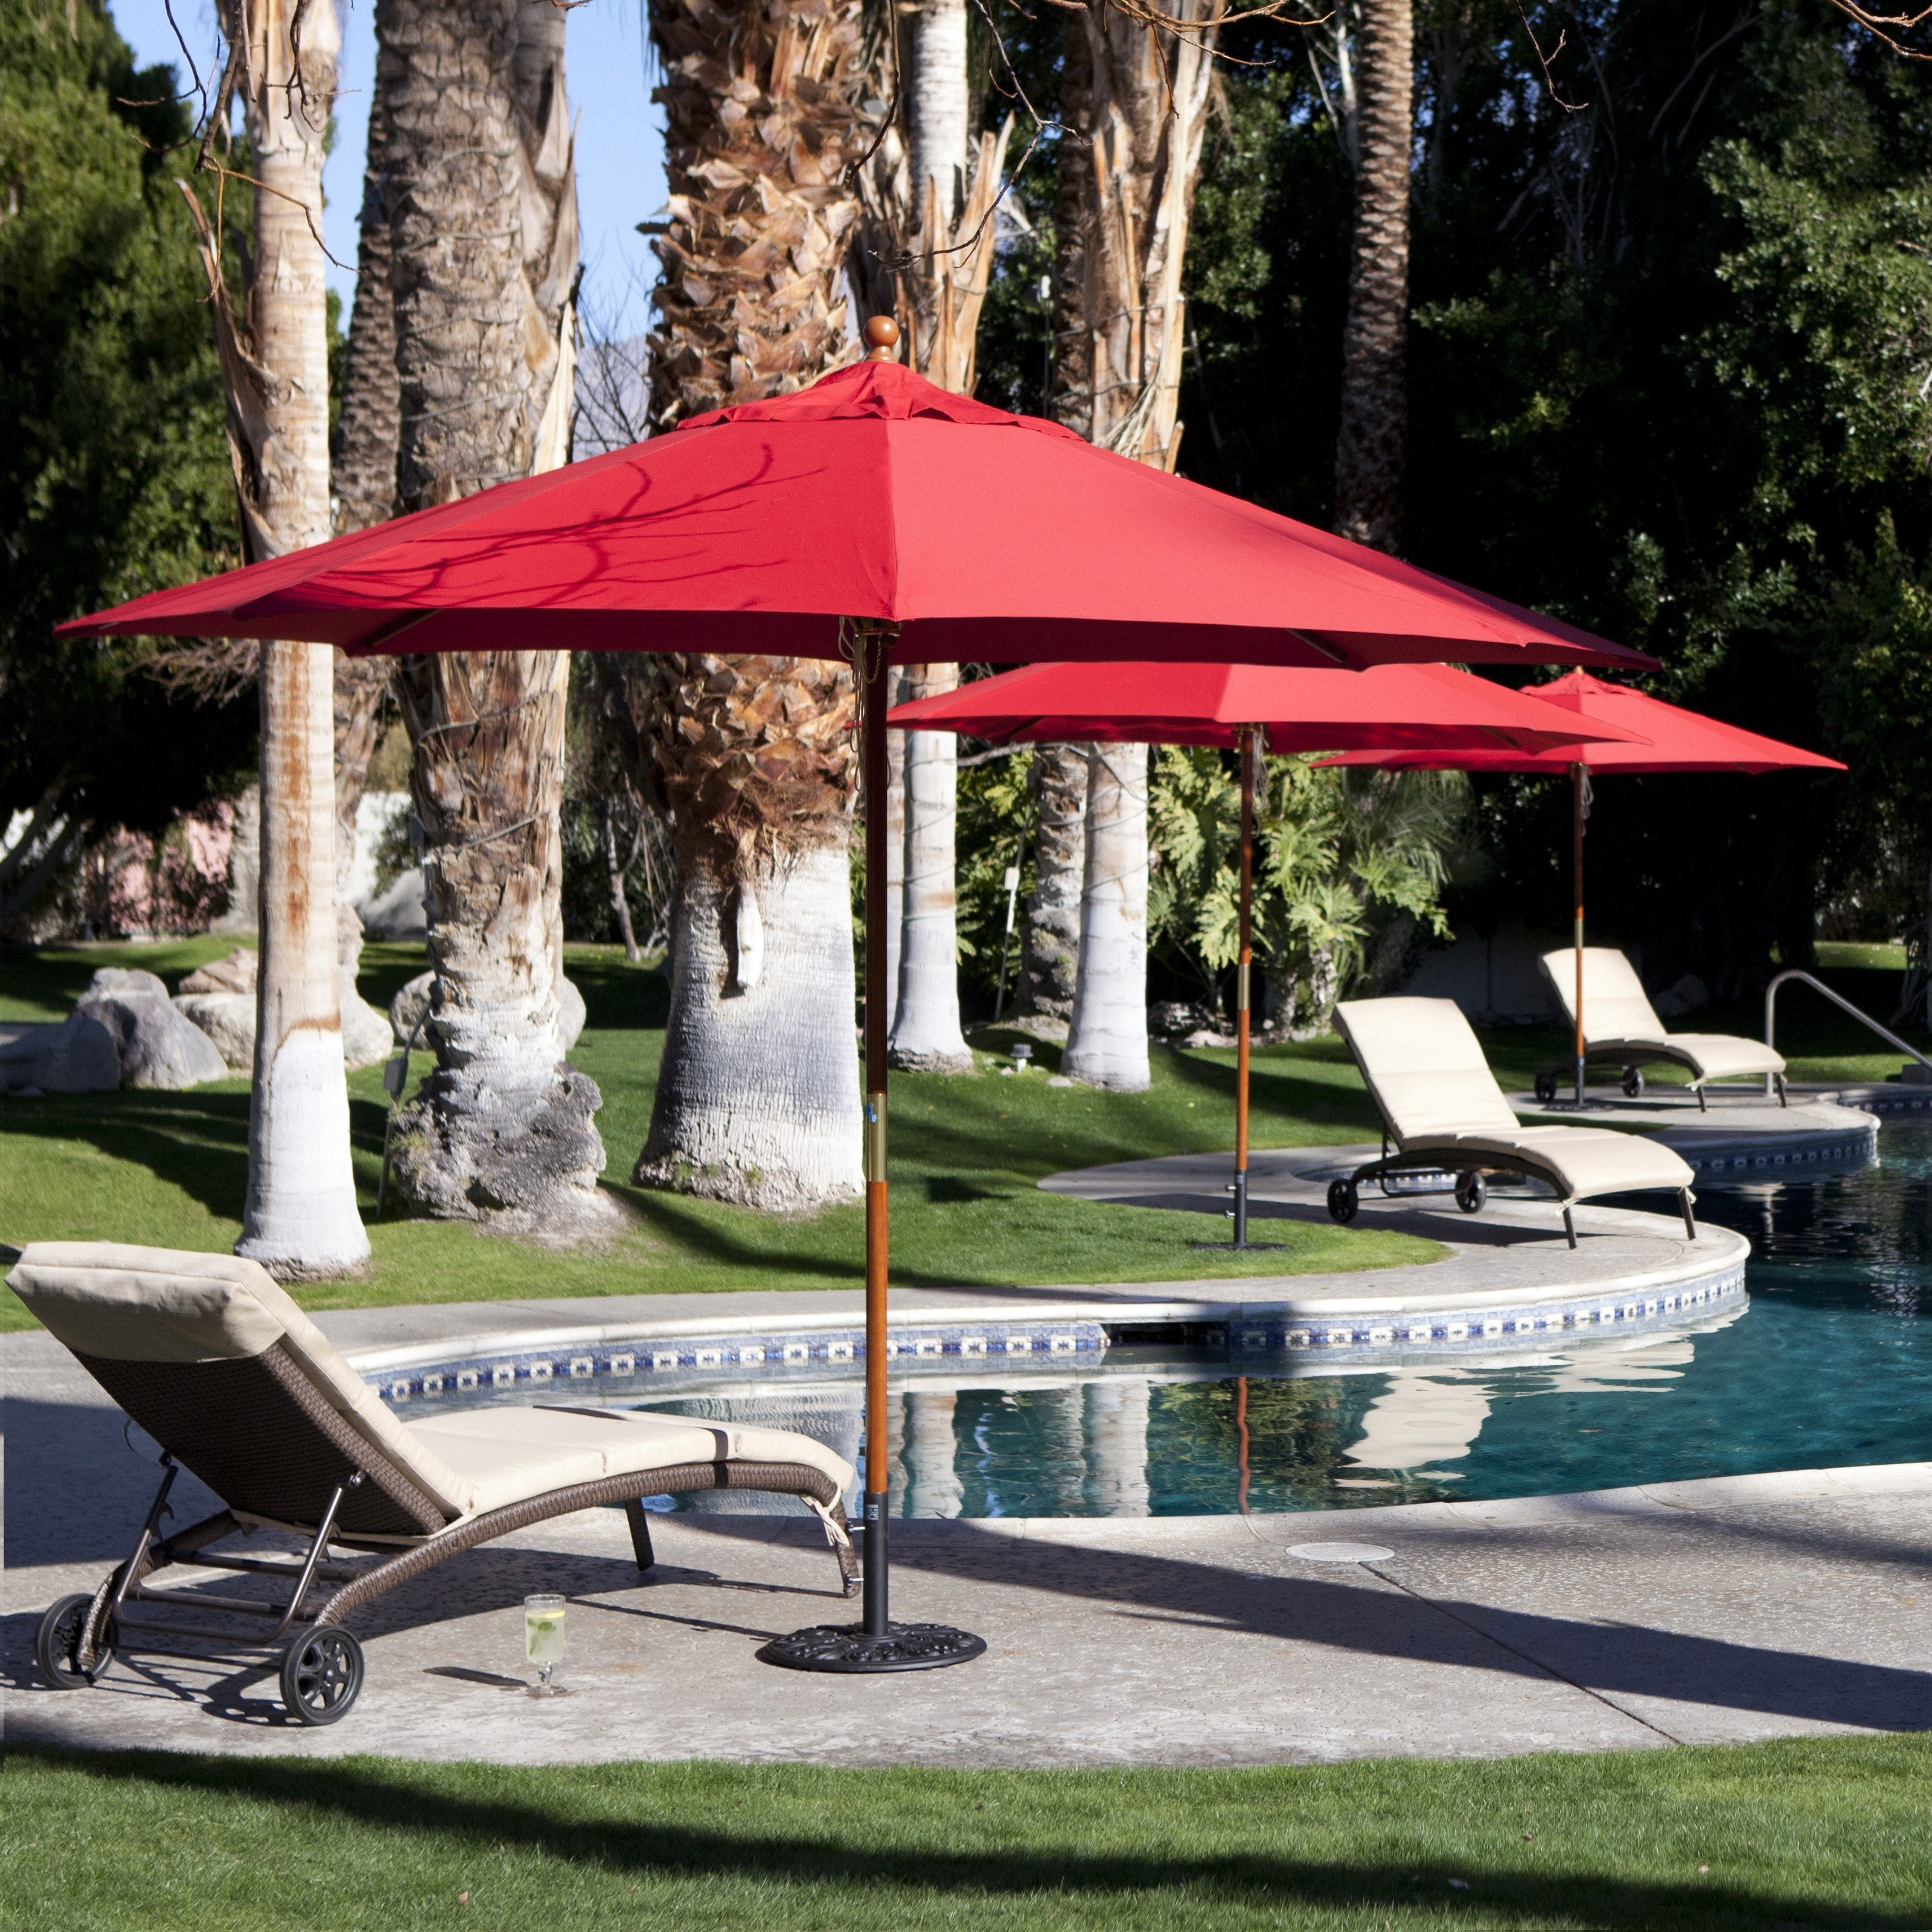 Coral Coast 11 Ft Mercial Wood Sunbrella Patio Umbrella Mercial Pati Intended For Most Up To Date Red Sunbrella Patio Umbrellas (View 4 of 20)